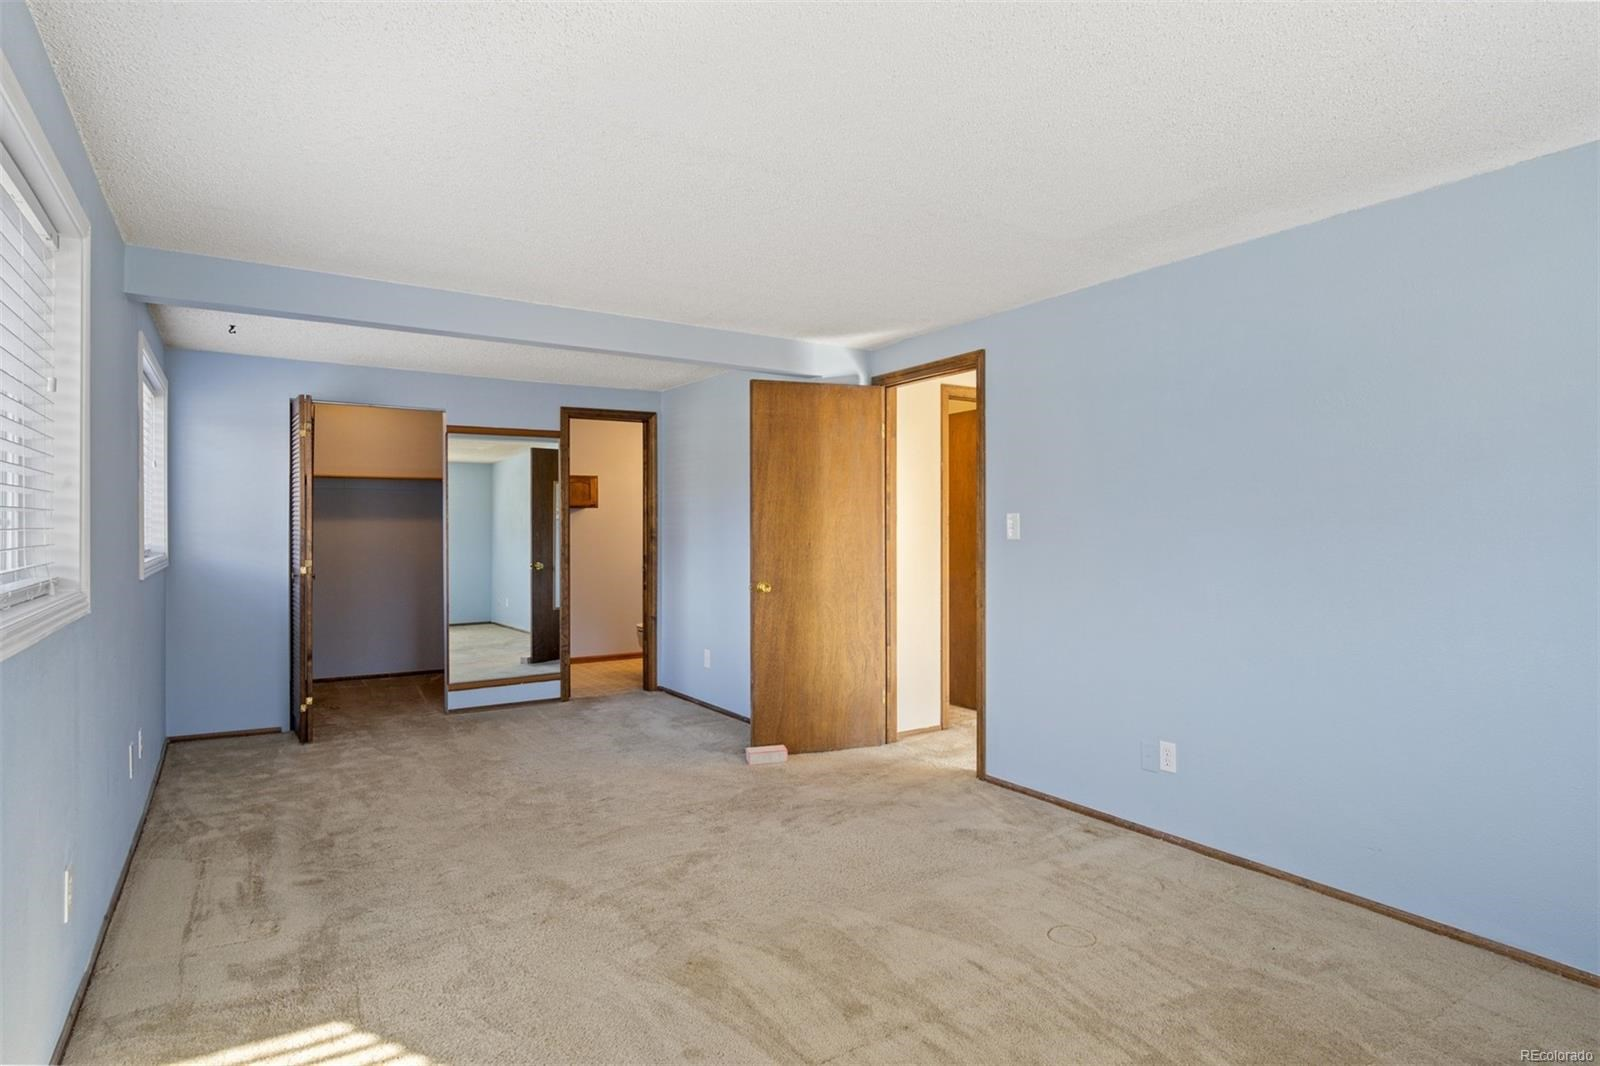 MLS# 5328221 - 1 - 12407  W 6th Place, Lakewood, CO 80401